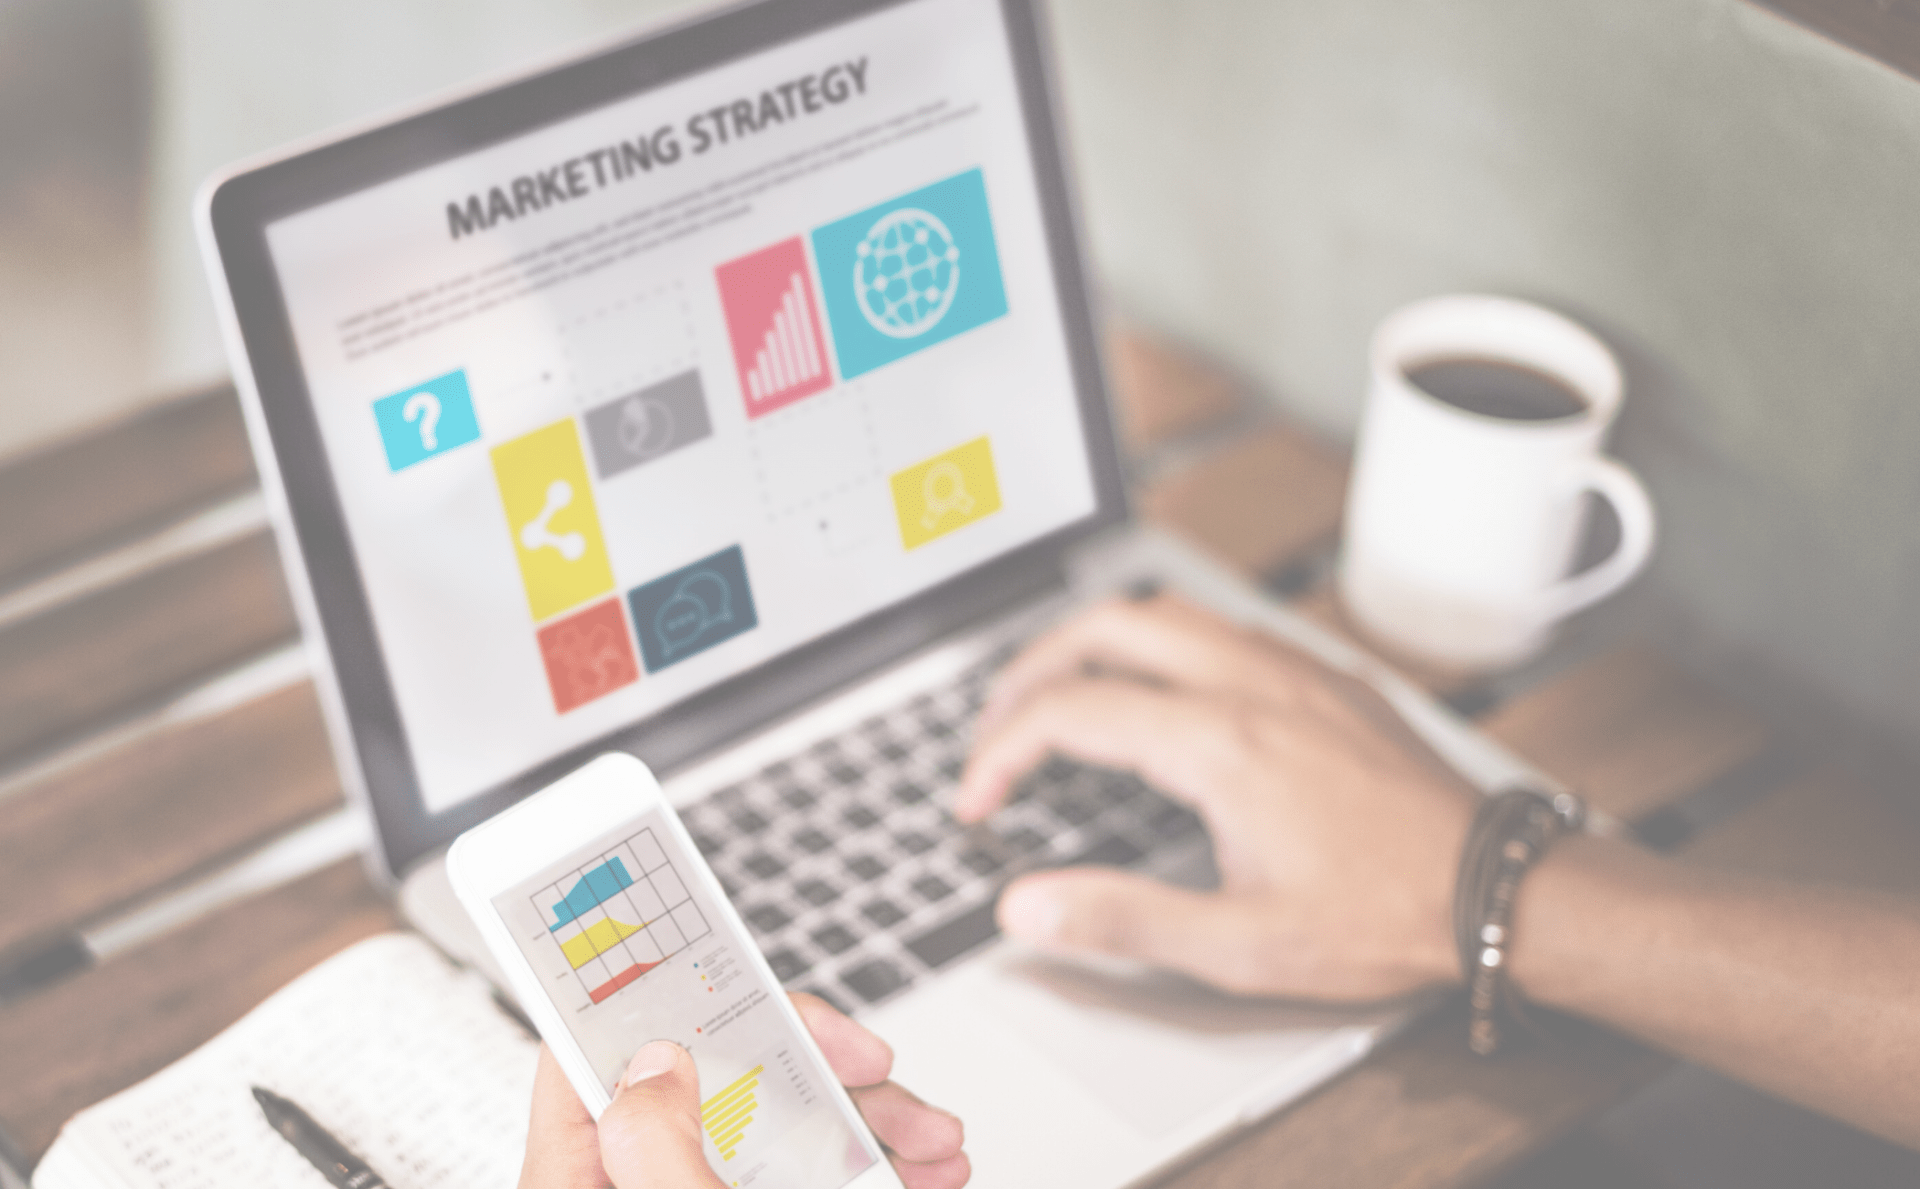 Cursos gratuitos de marketing digital a tu alcance